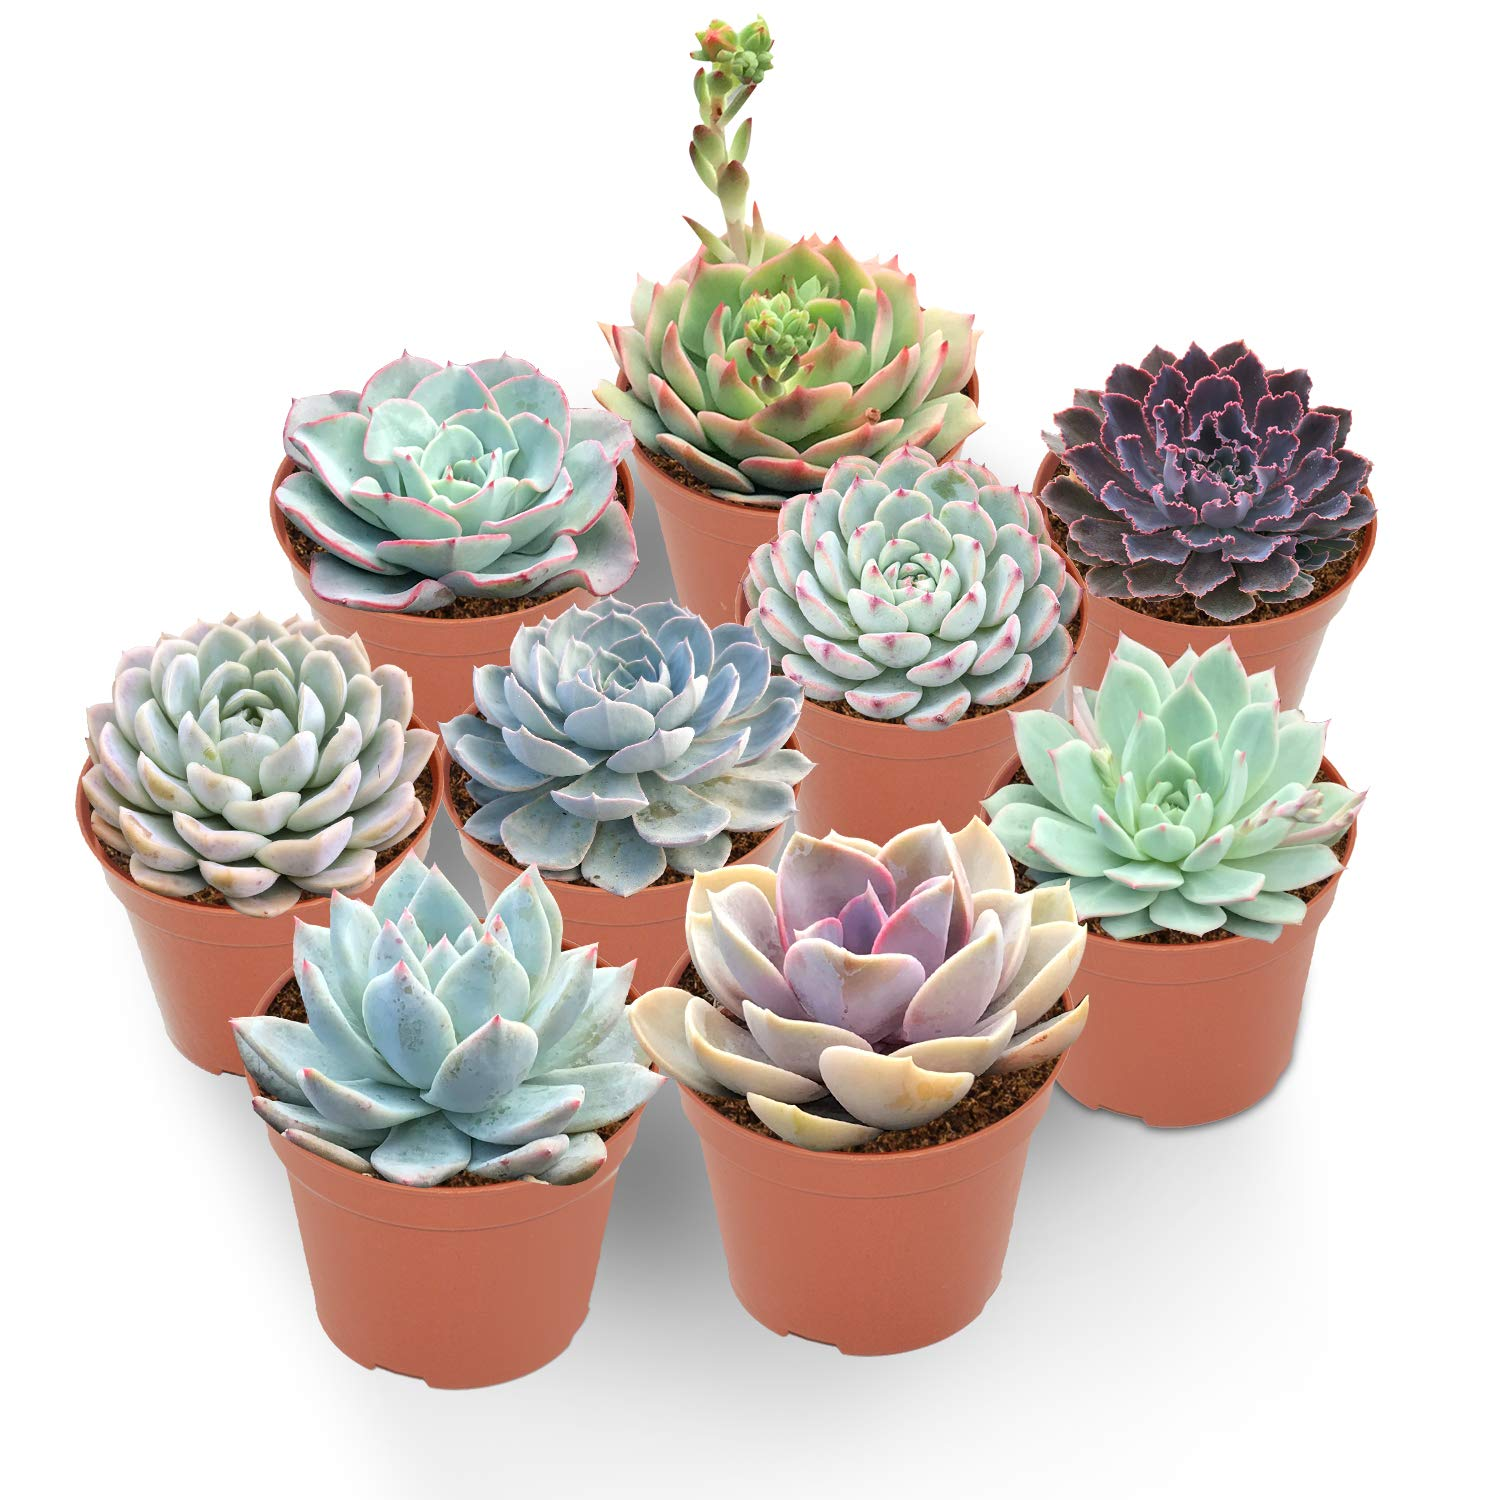 Premium Rosette Succulents, 9 Assorted Rooted Succulents in 4'' Planter Pots with Soil, Real Live Succulents Bonsai for Indoor Home Office Cactus Decor, Terrariums, Mini Garden by The Next Gardener